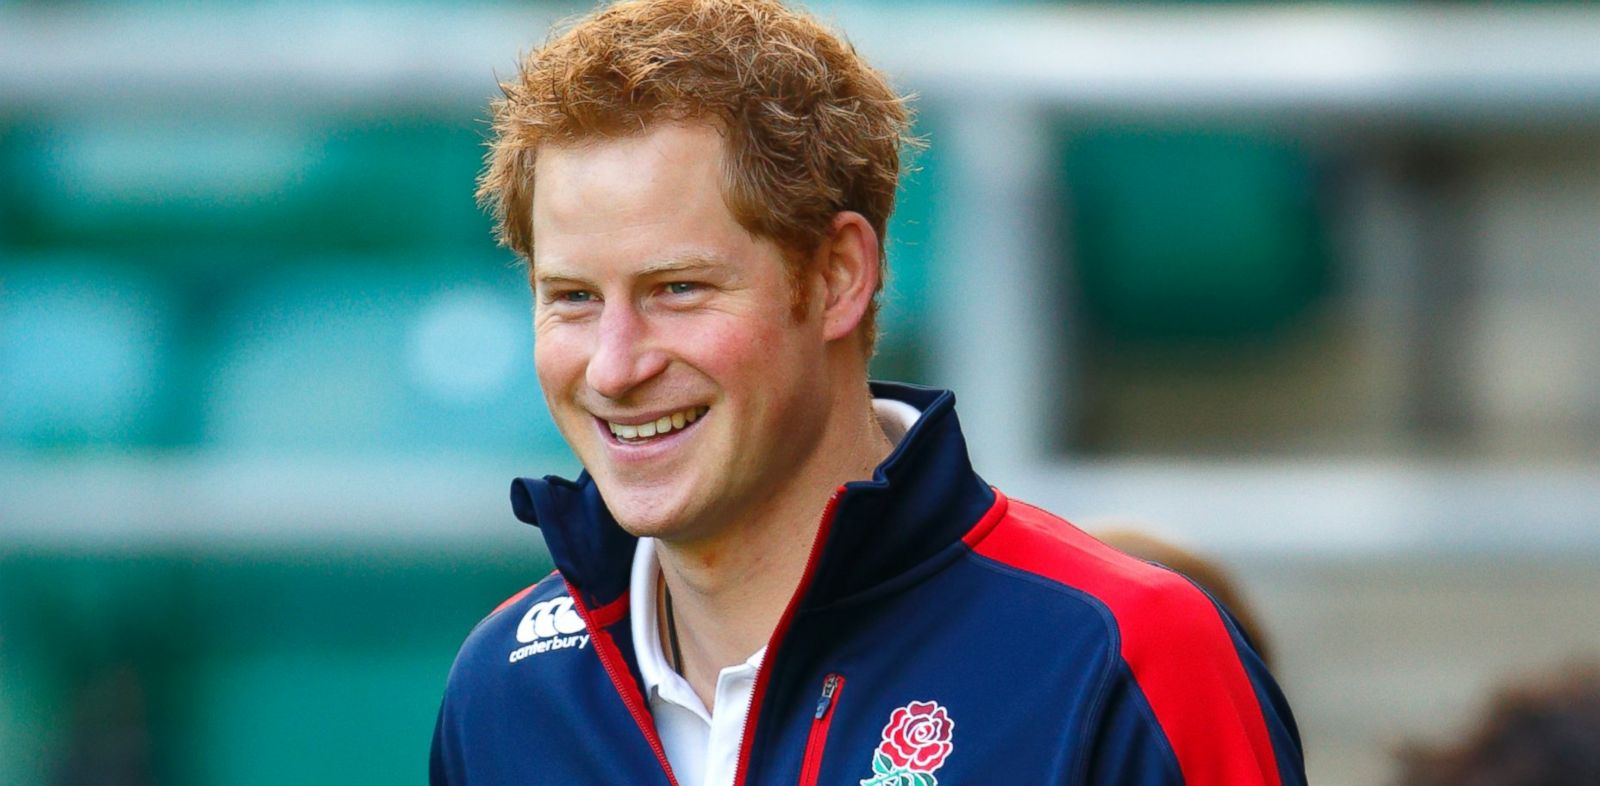 PHOTO: In this file photo, Prince Harry, in his role as Patron of the Rugby Football Union All Schools Programme, arrives to take part in a rugby coaching session at Twickenham Stadium on Oct.17, 2013 in London.